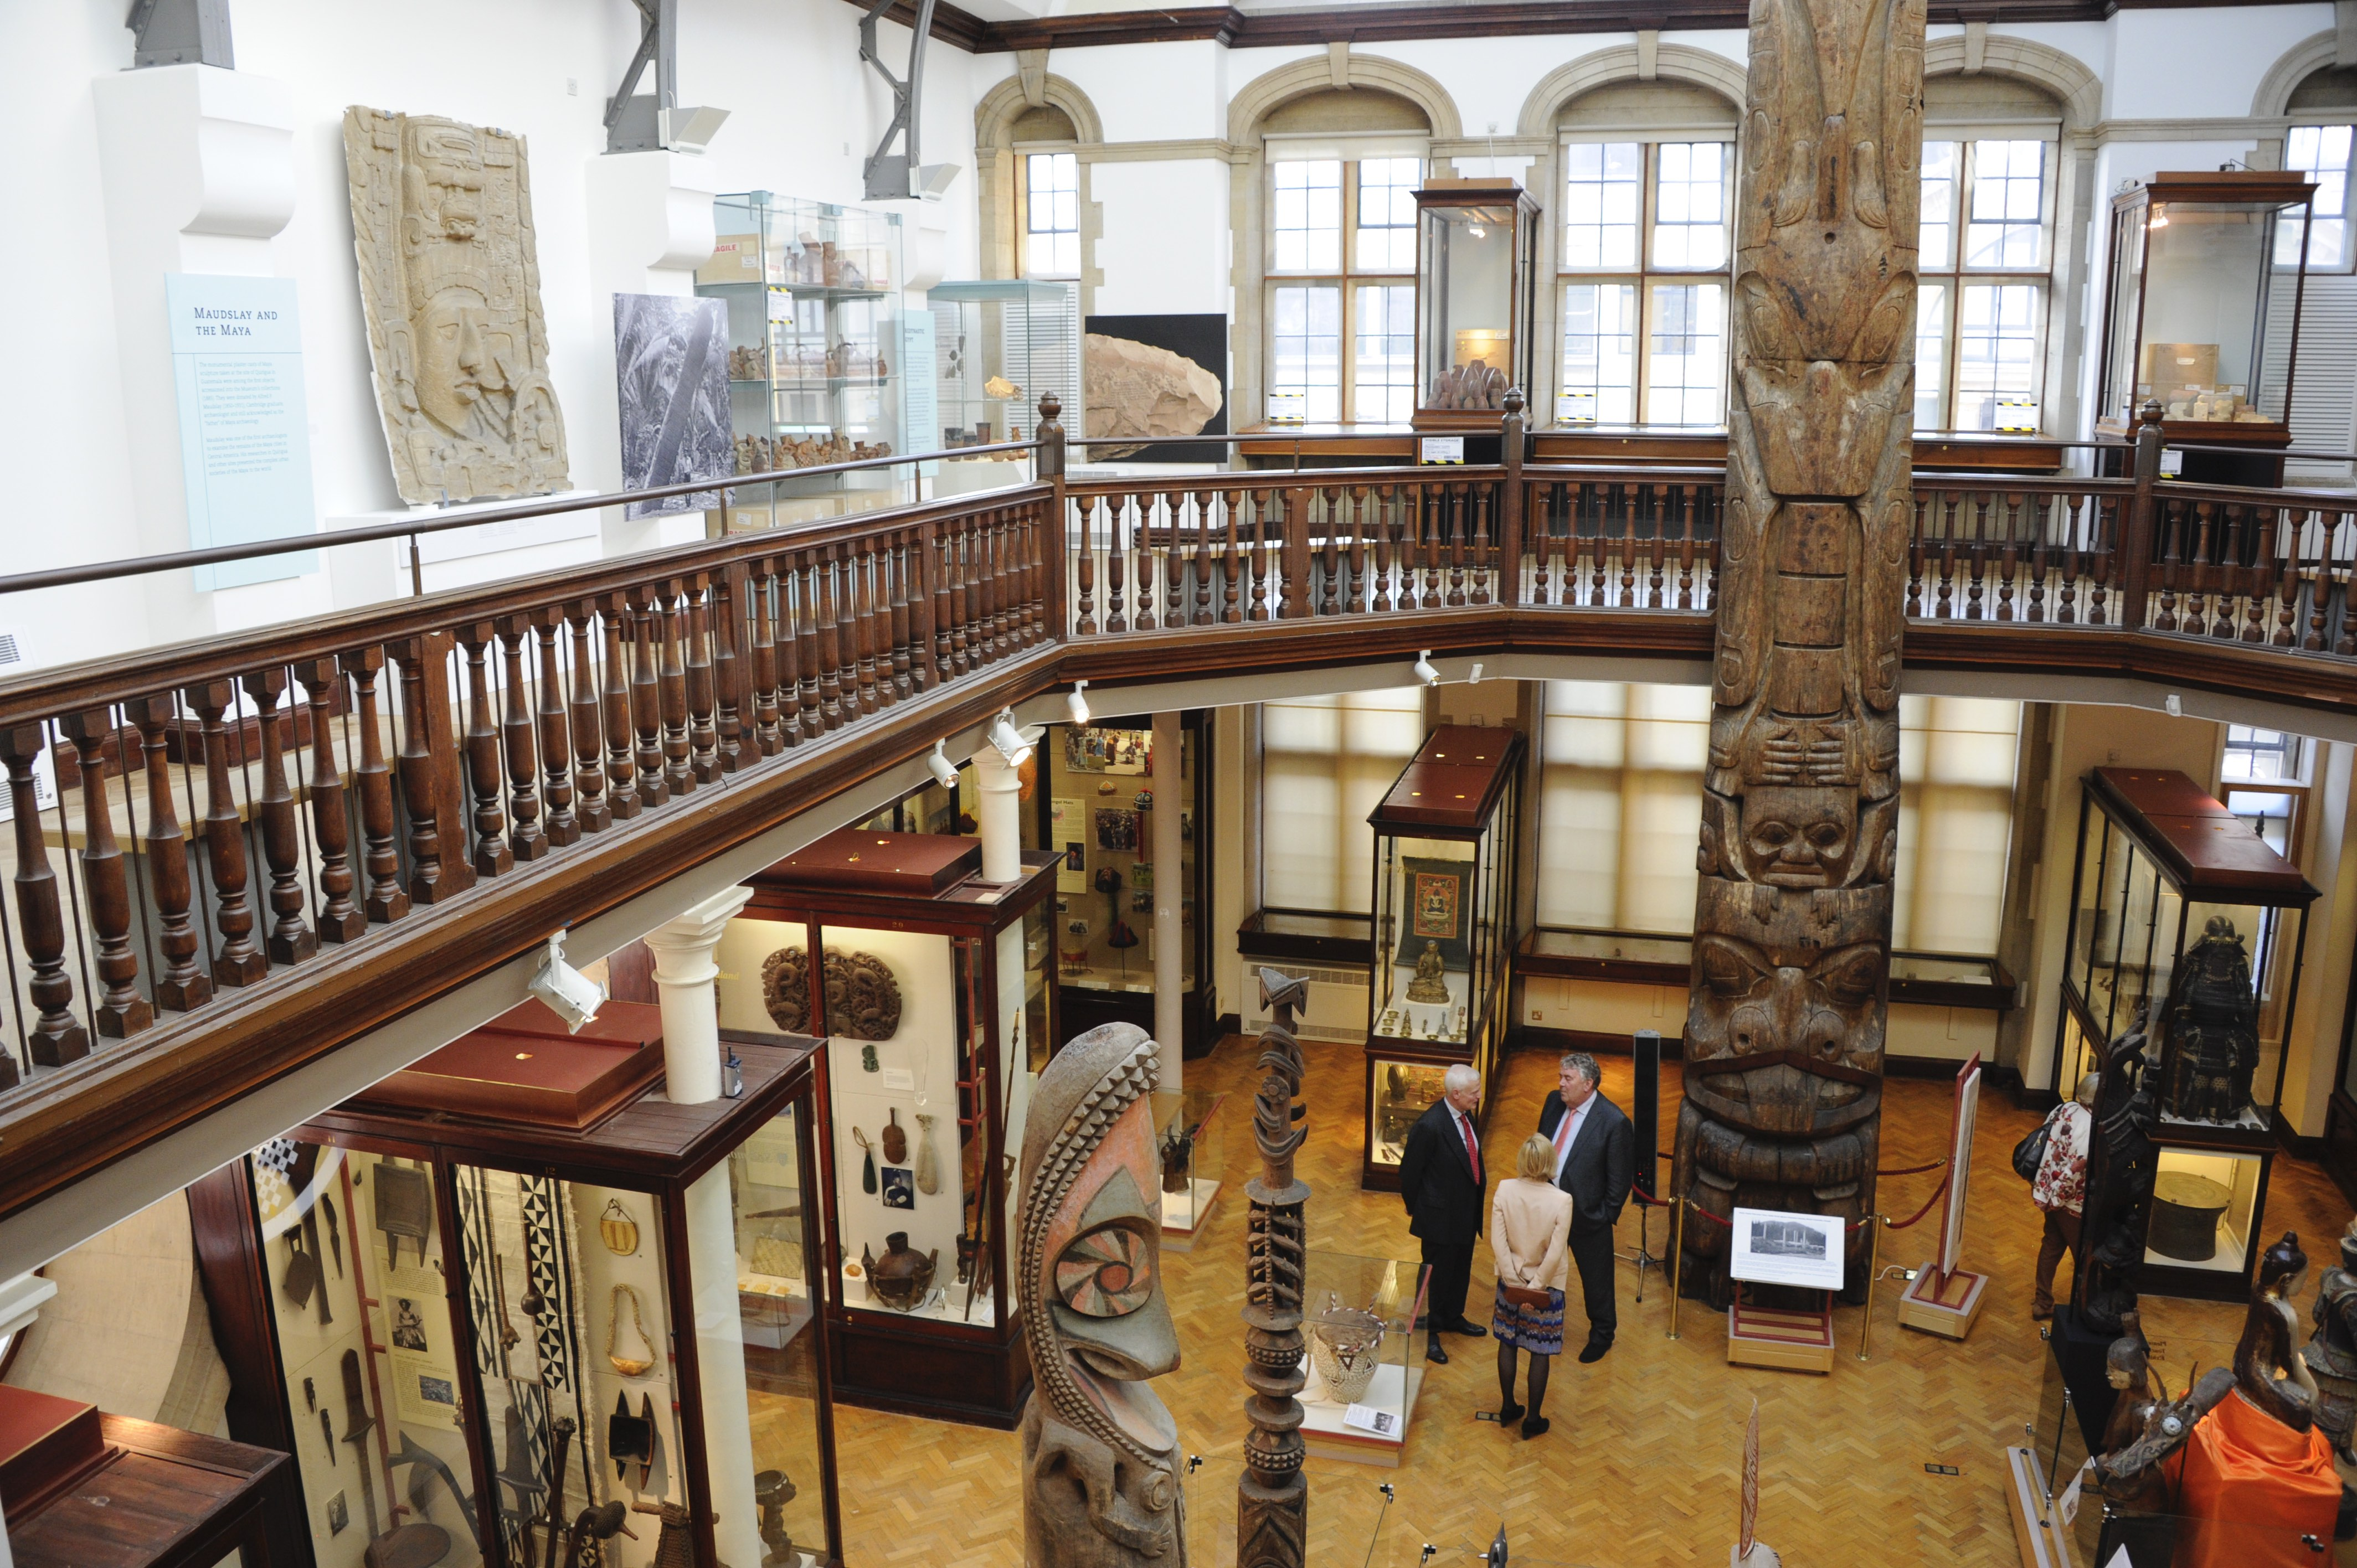 A view of the Maudslay Gallery from the Andrews Gallery